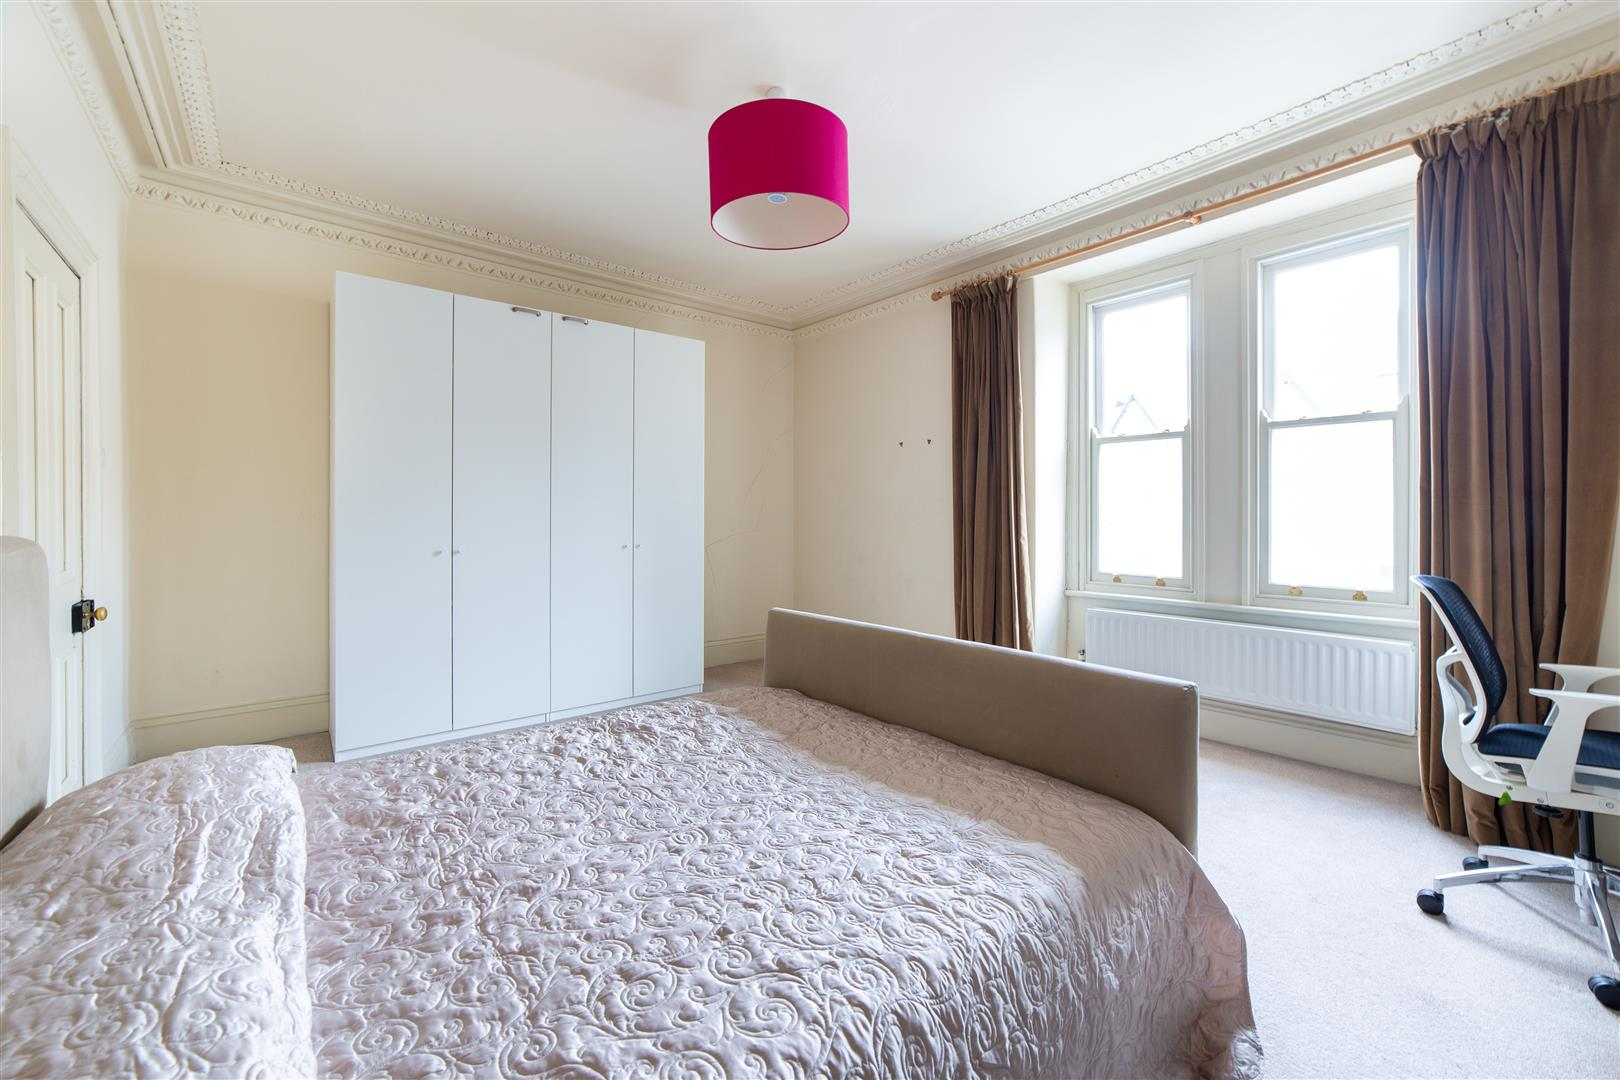 4 bed terraced house to rent in Newcastle Upon Tyne, NE6 5NU 6